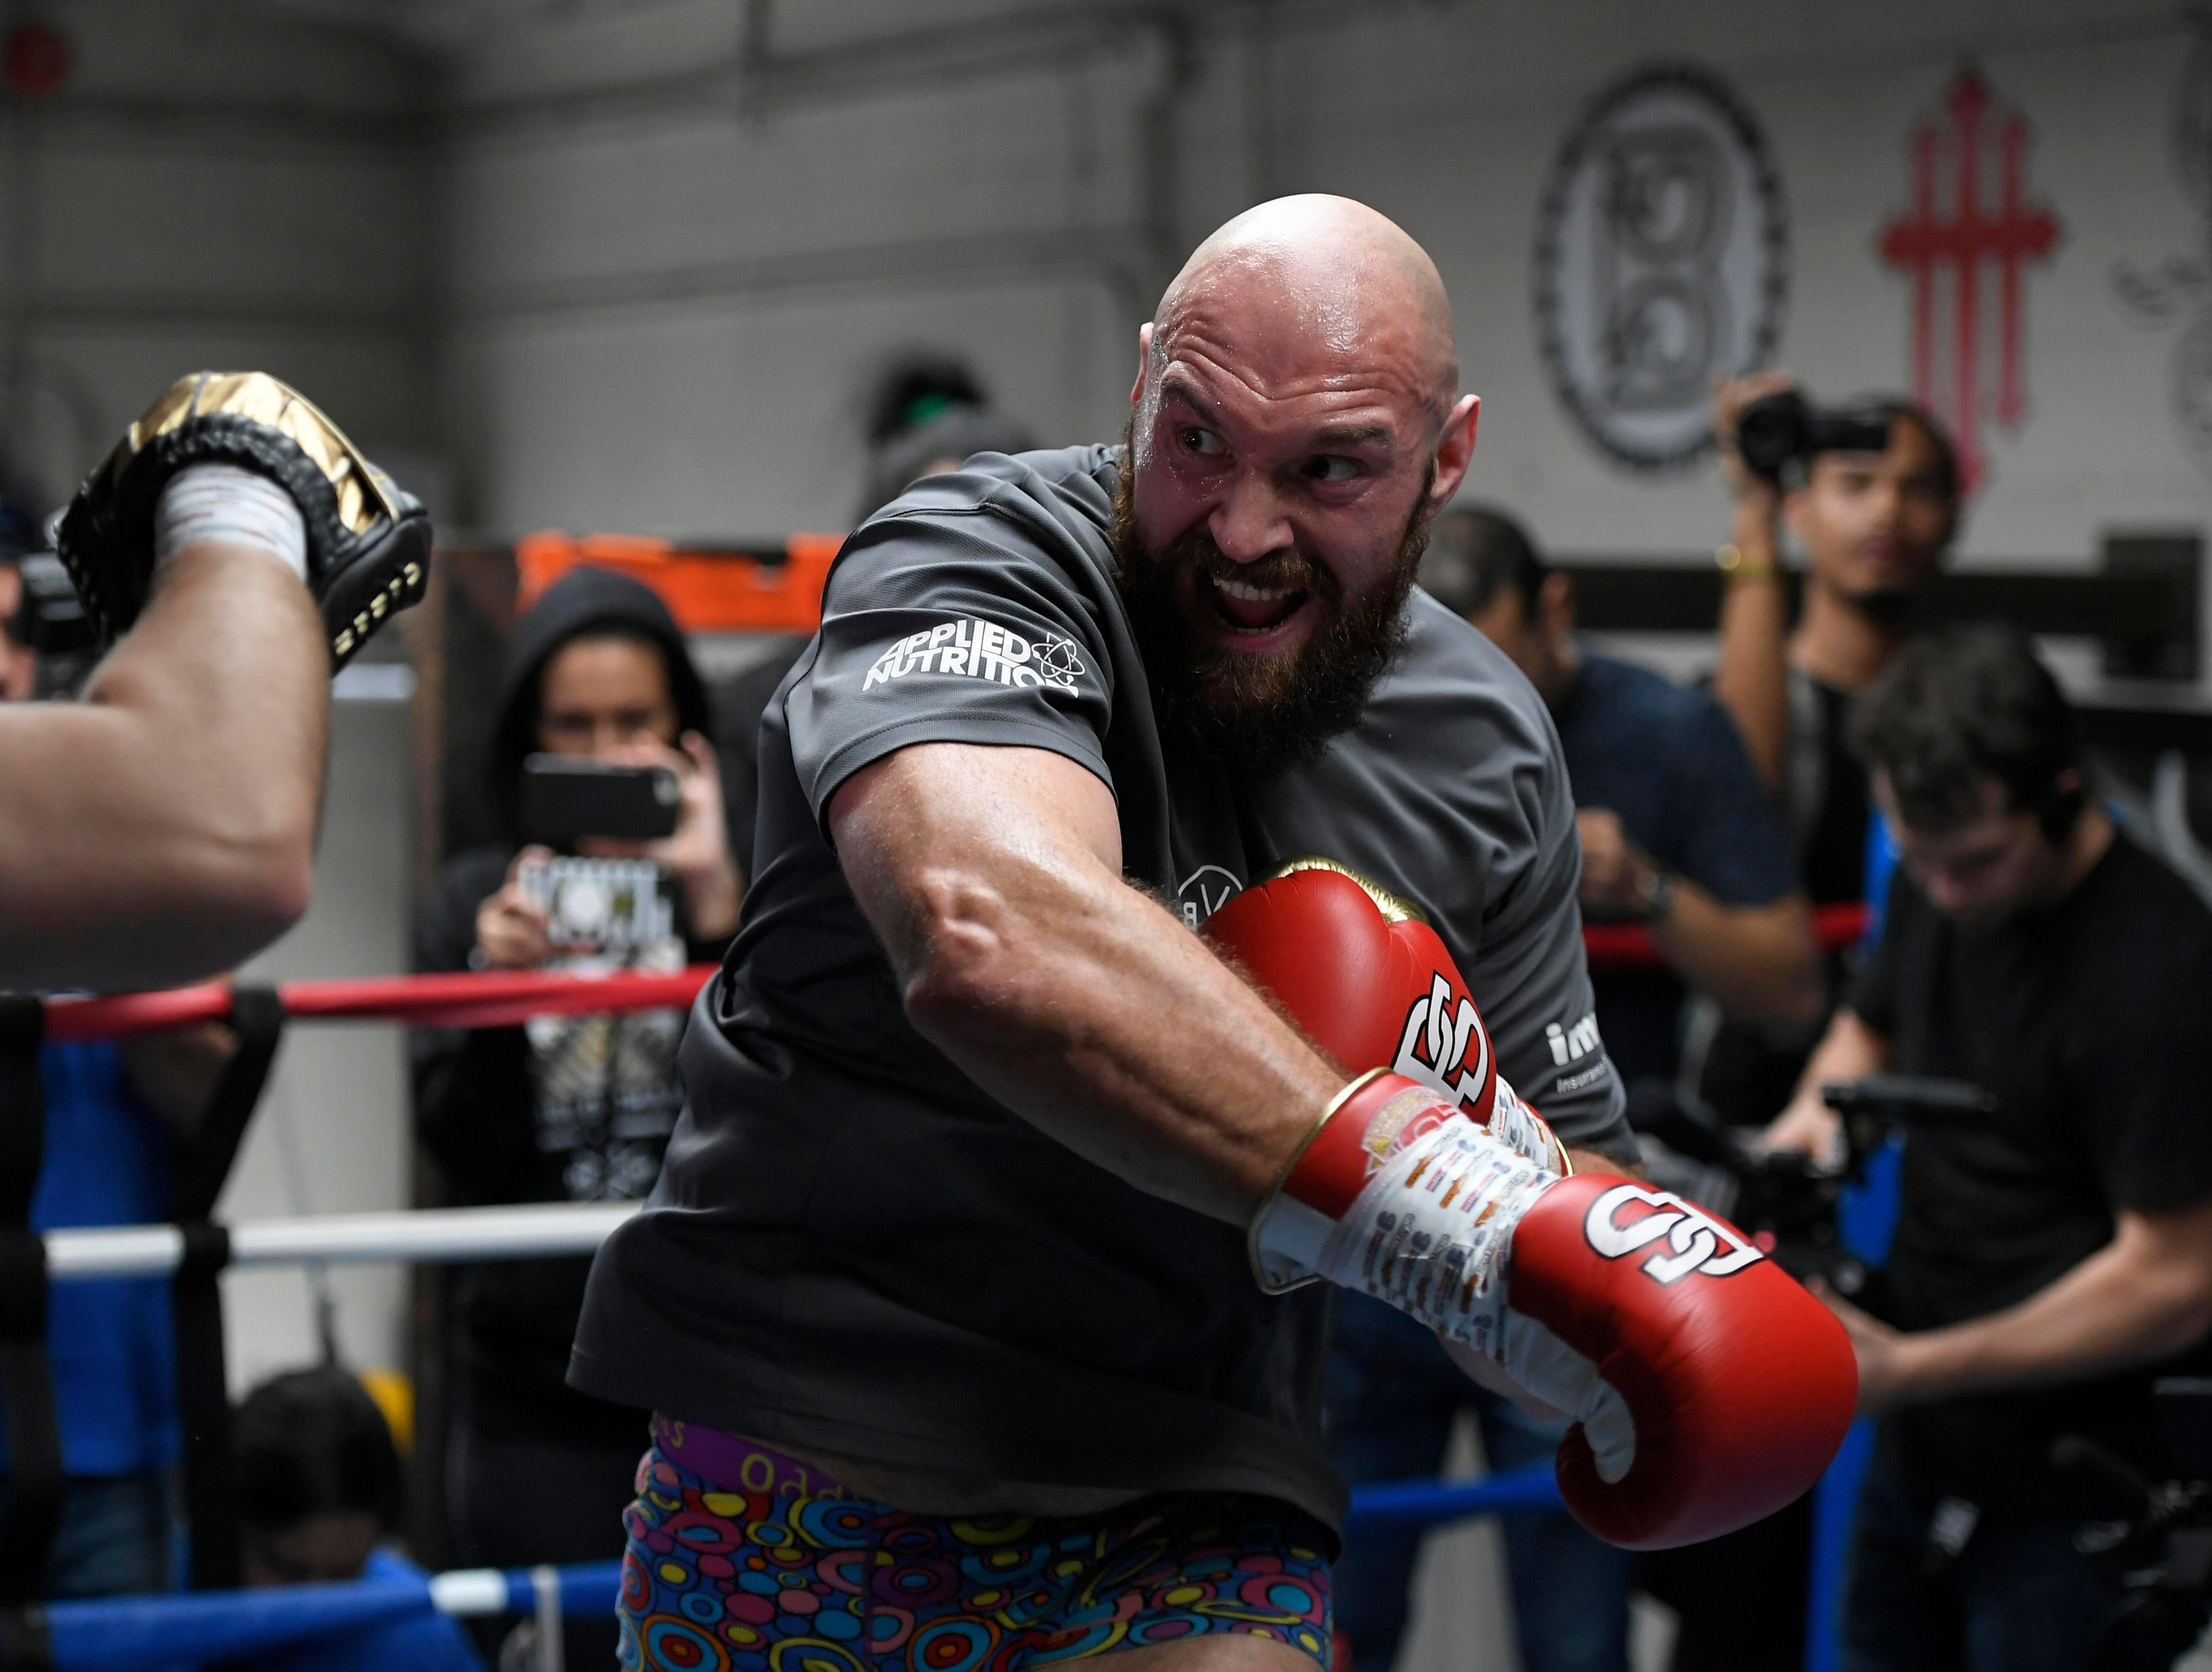 Tyson Fury has been tipped to KO Deontay Wilder inside six rounds